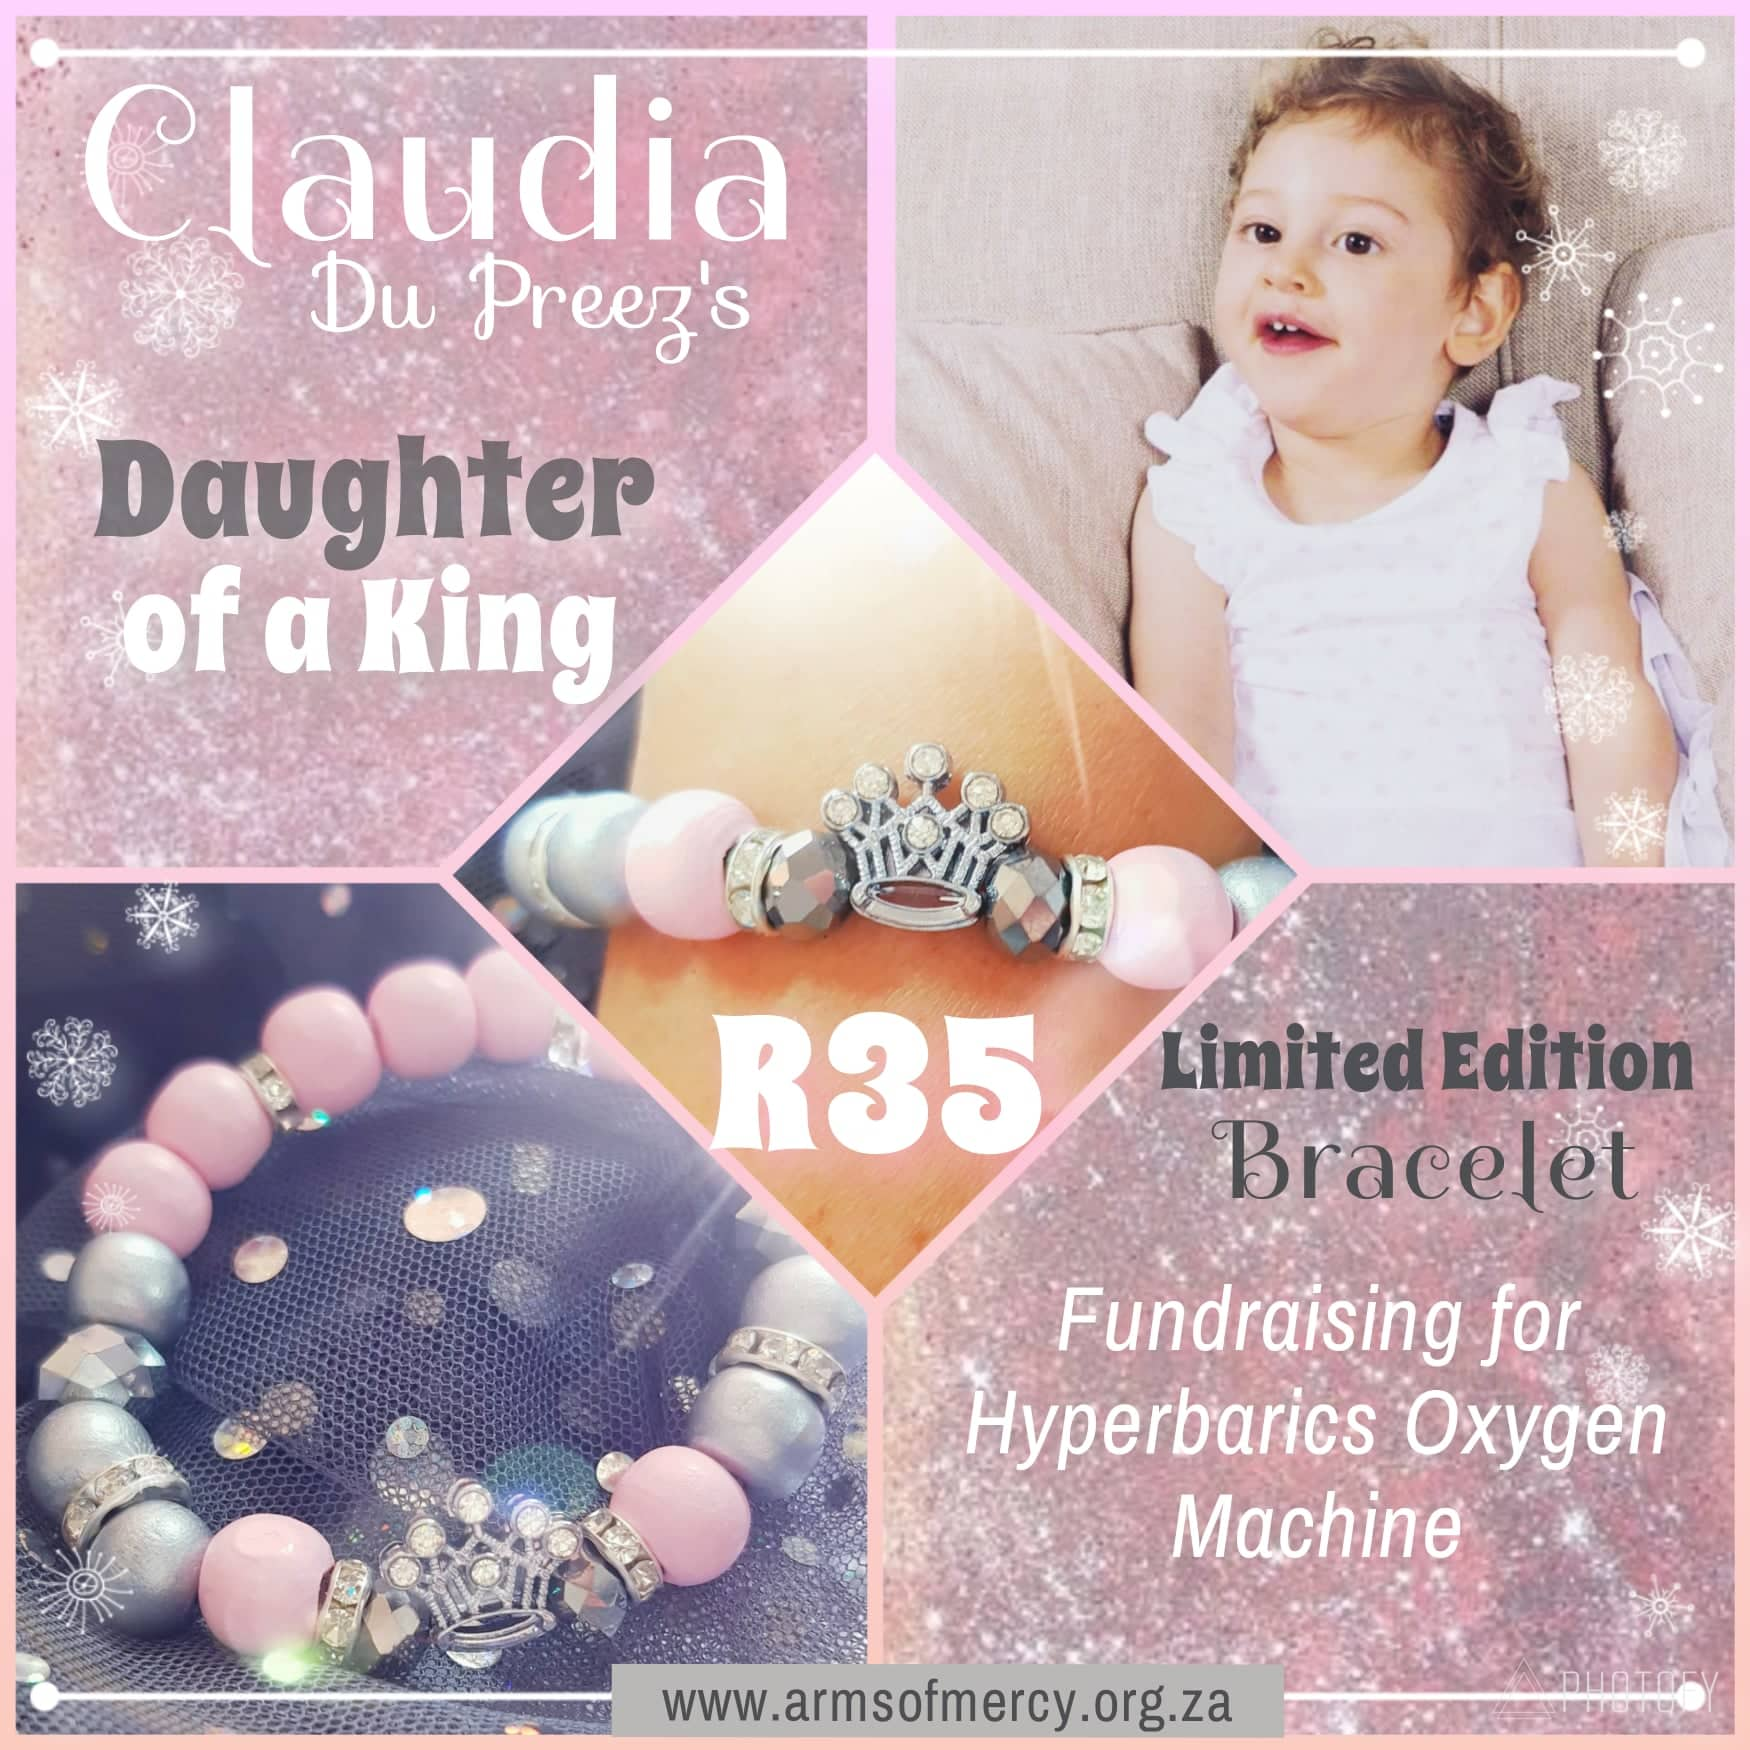 Daughter of a King Bracelet for Claudia Du Preez - Limited Edition - Arms of Mercy NPC